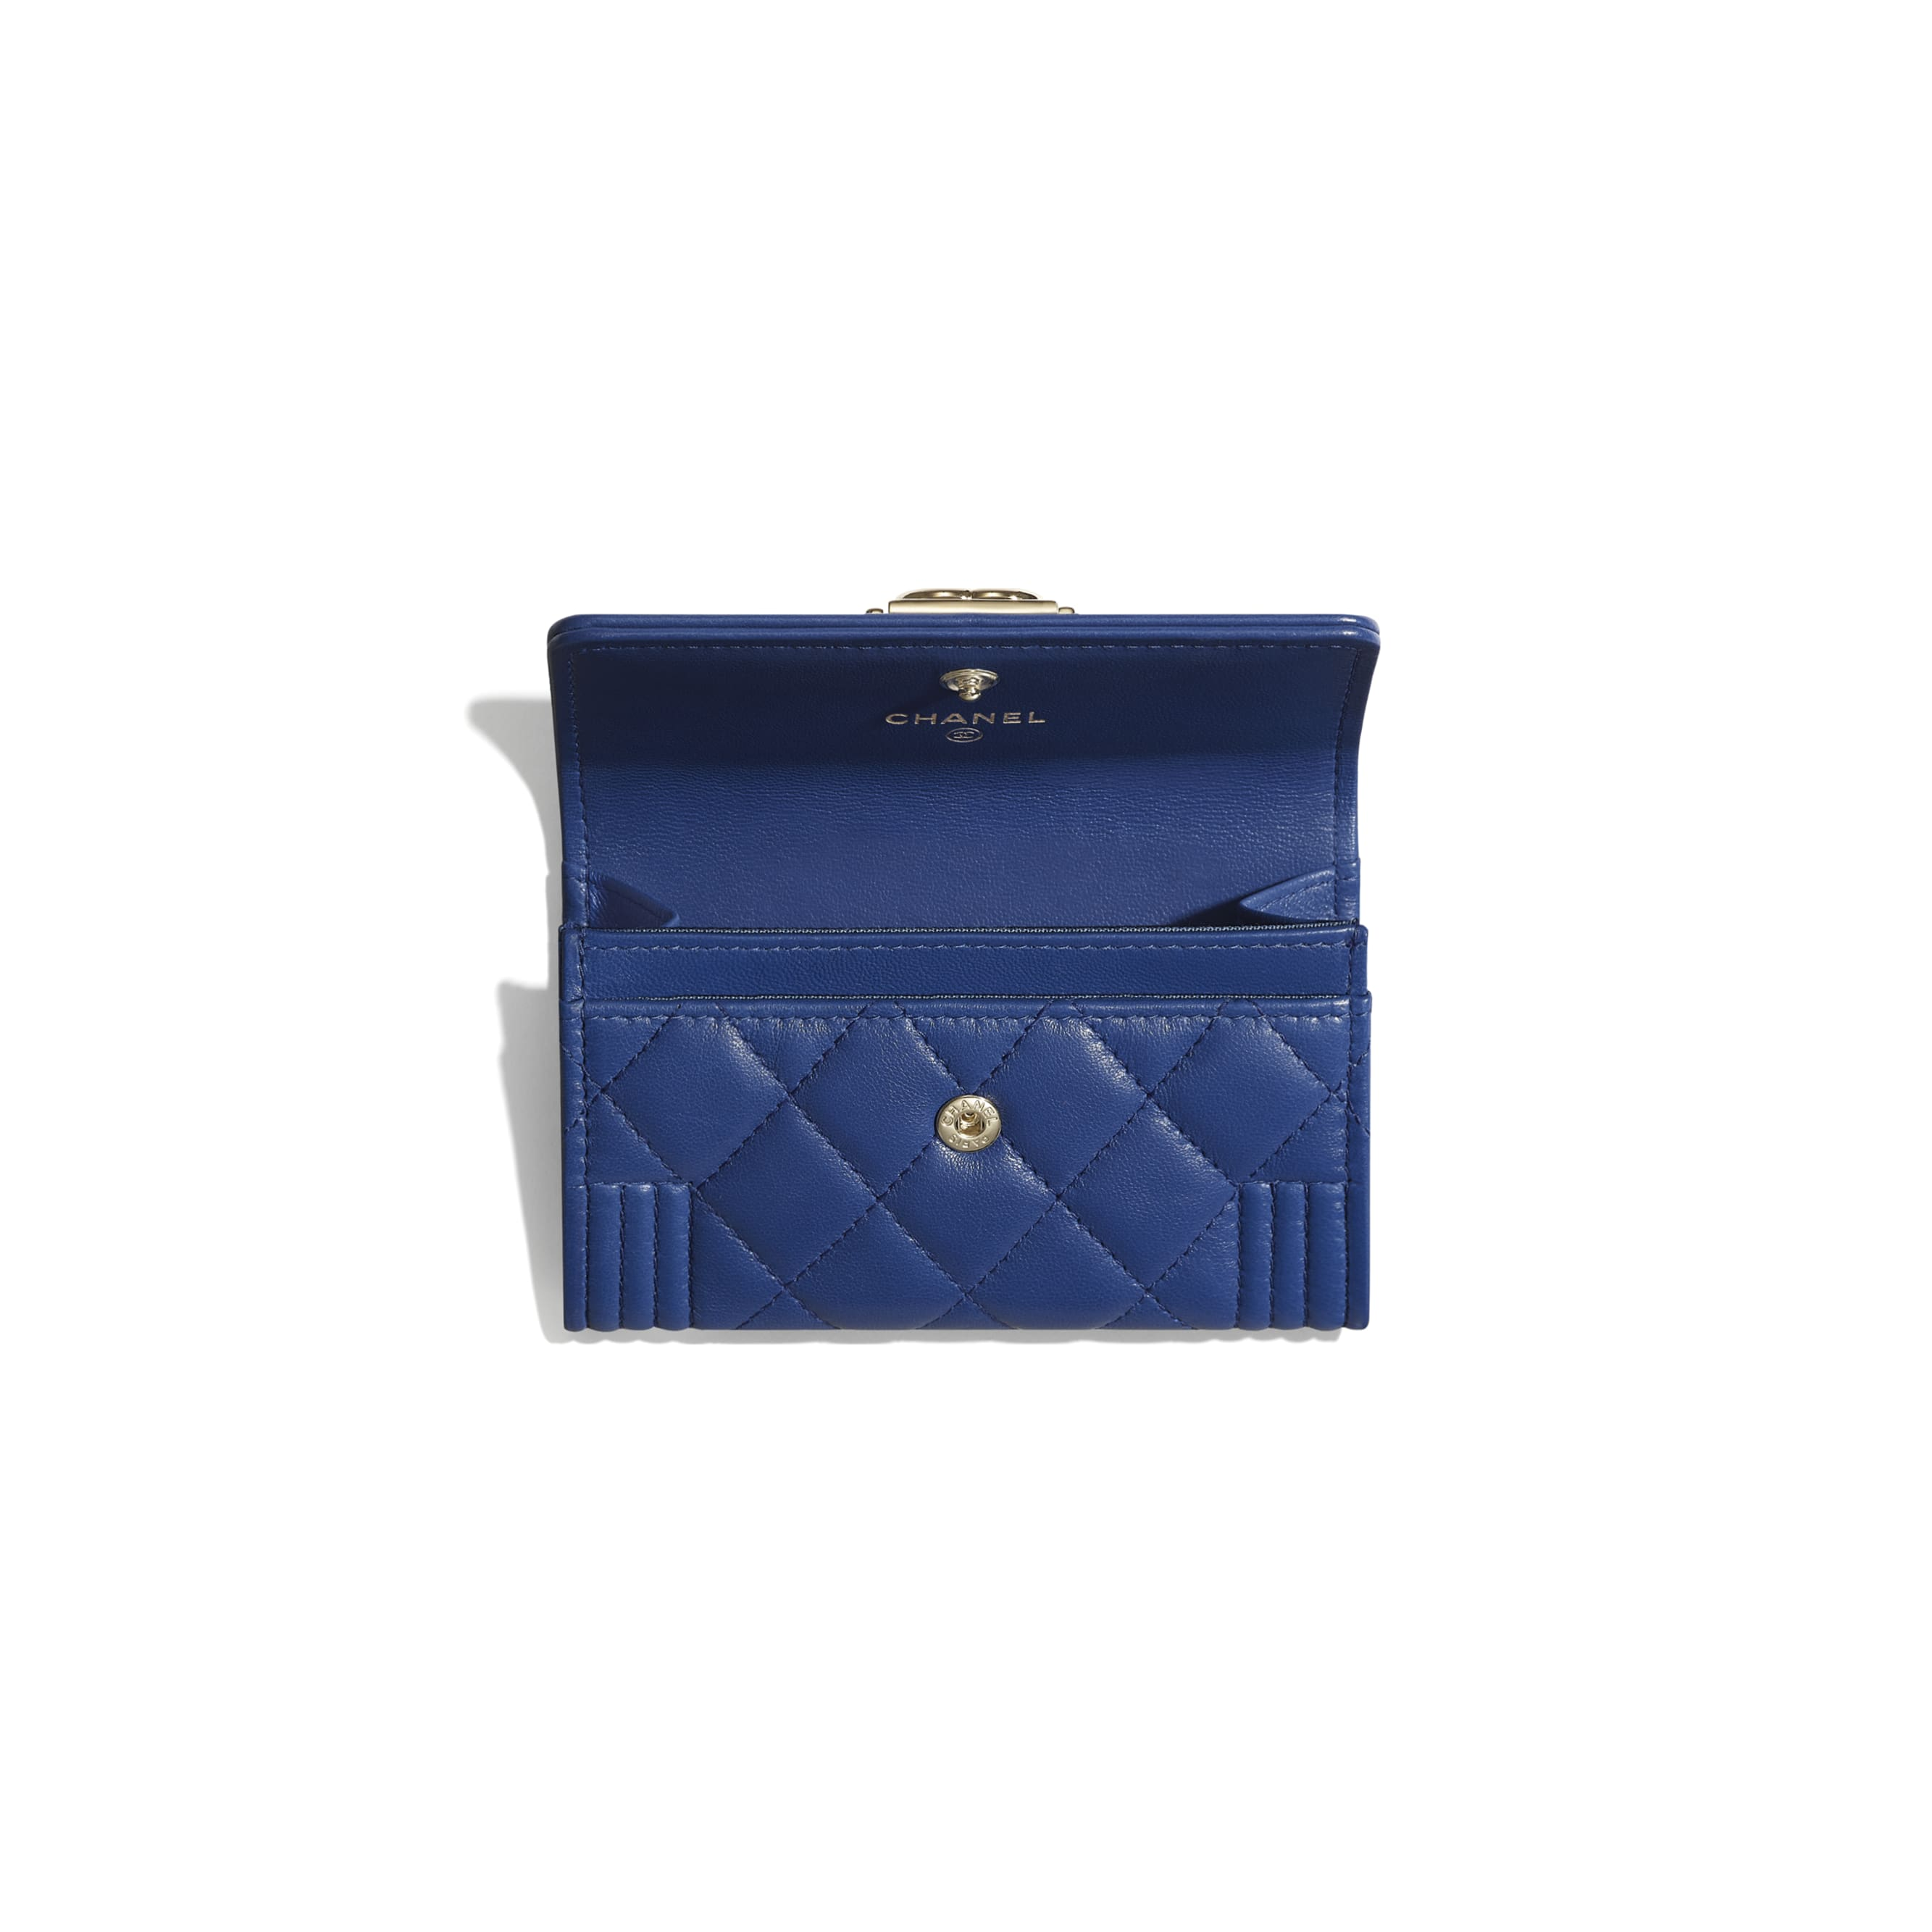 BOY CHANEL Flap Card Holder - Dark Blue - Lambskin & Gold-Tone Metal - CHANEL - Other view - see standard sized version